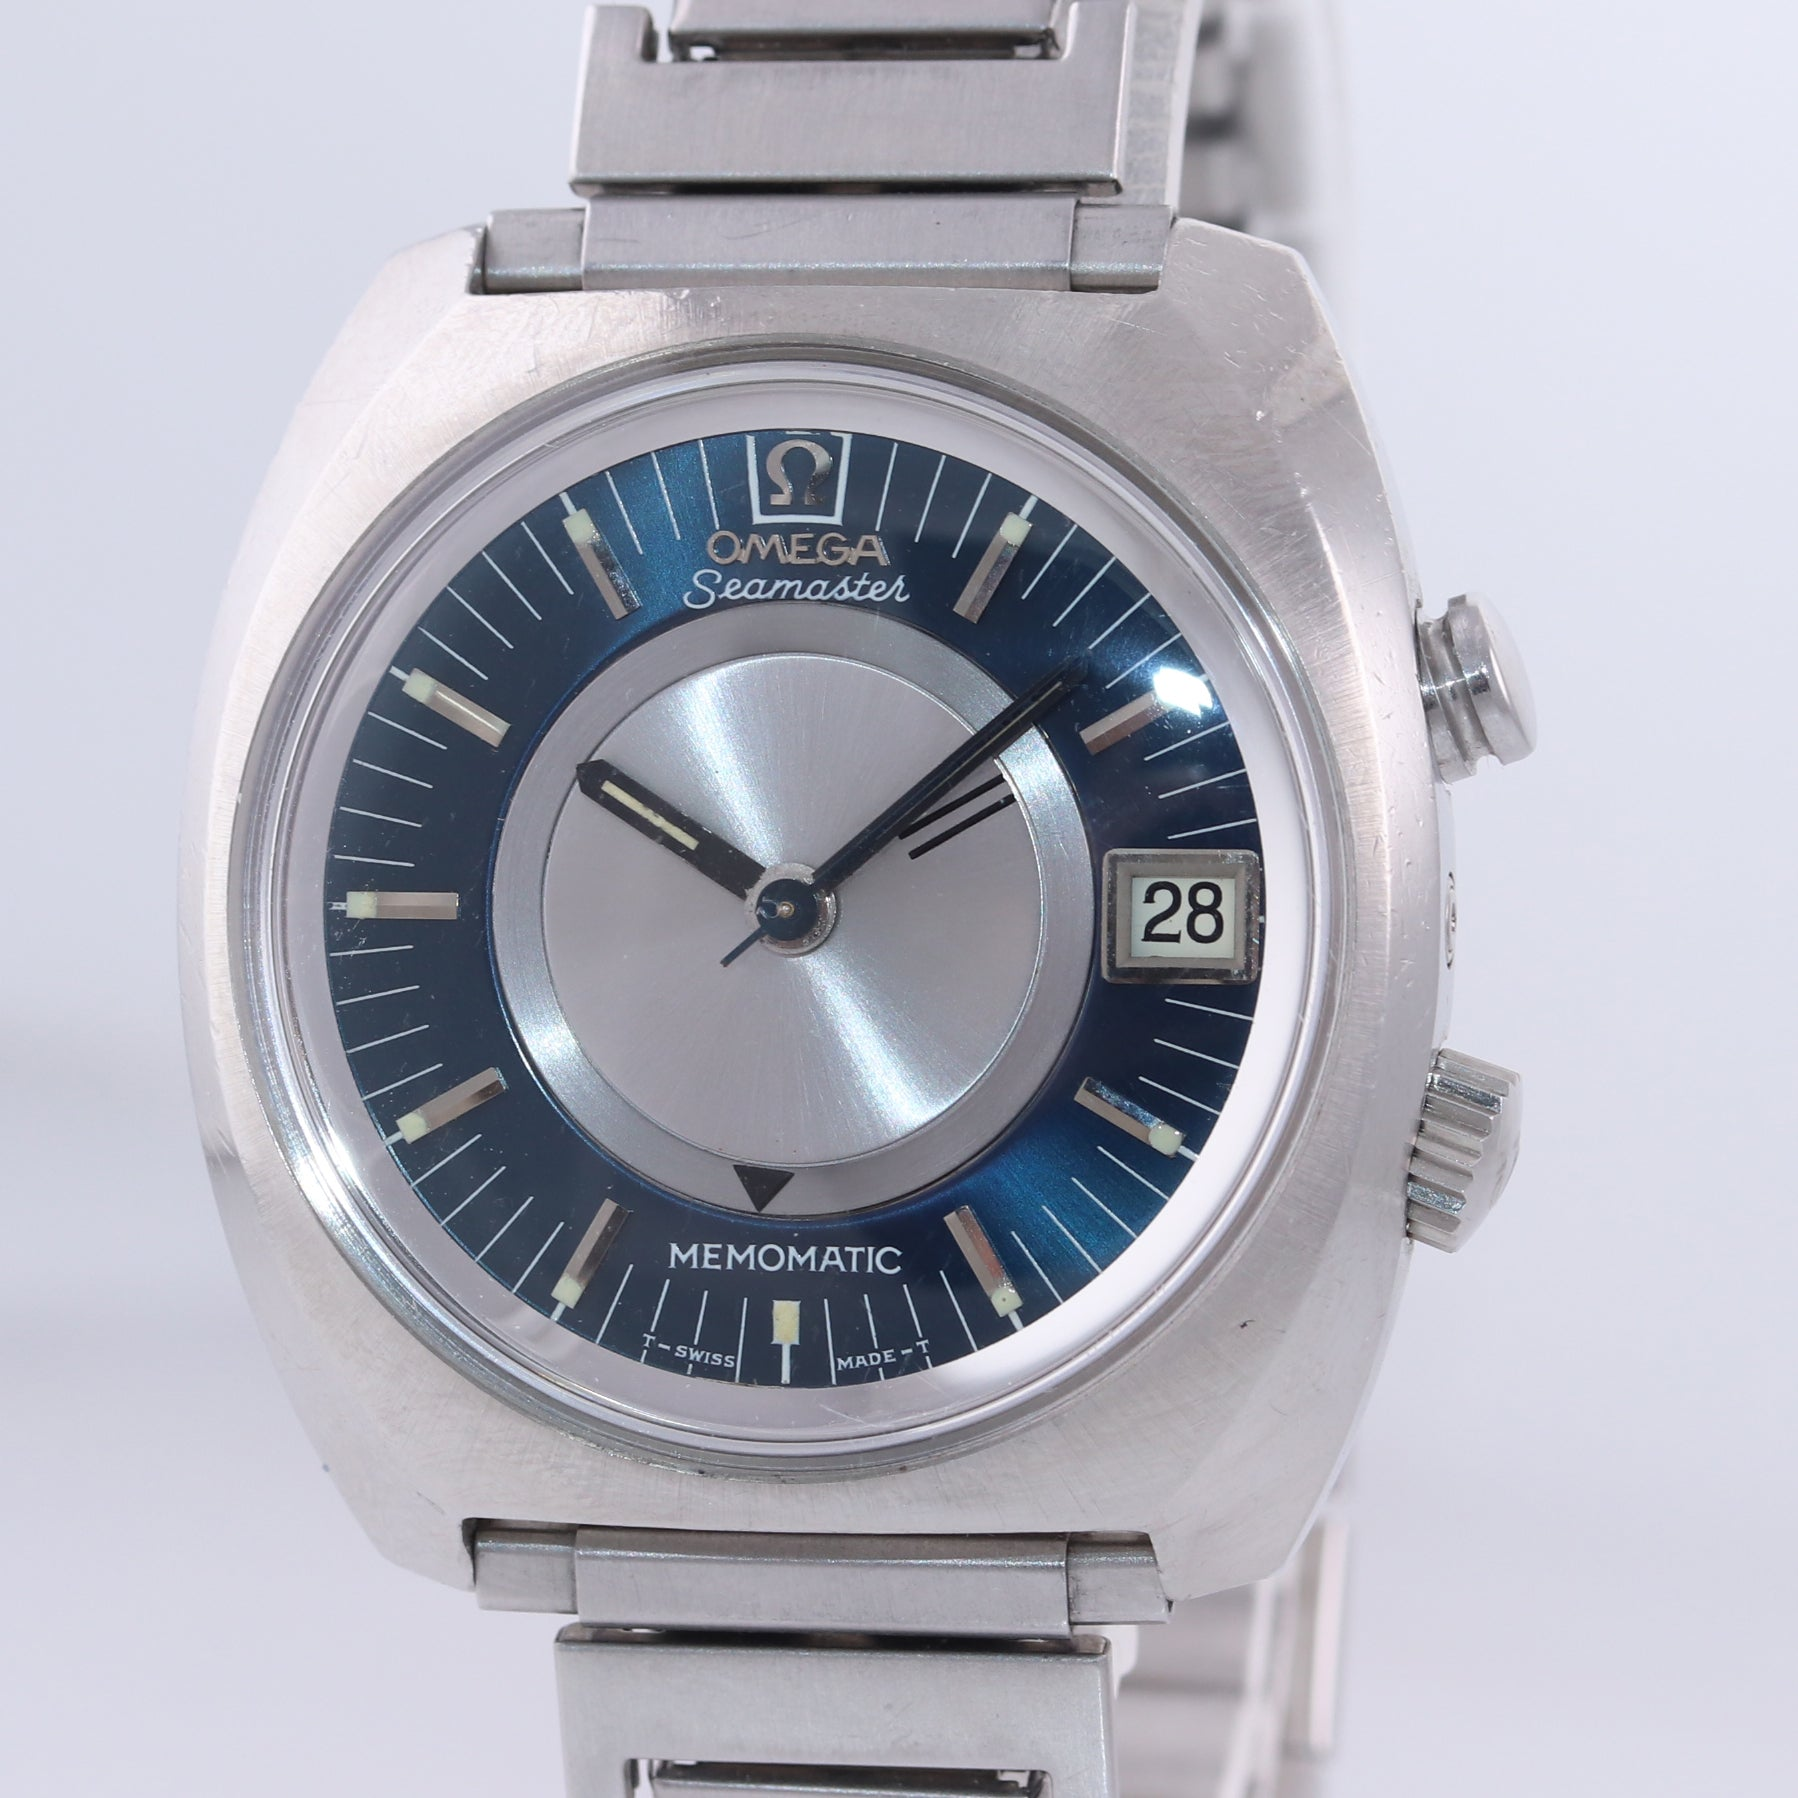 VTG Omega Seamaster Memomatic Steel 166.072 Alarm Automatic Cal 980 40mm Watch